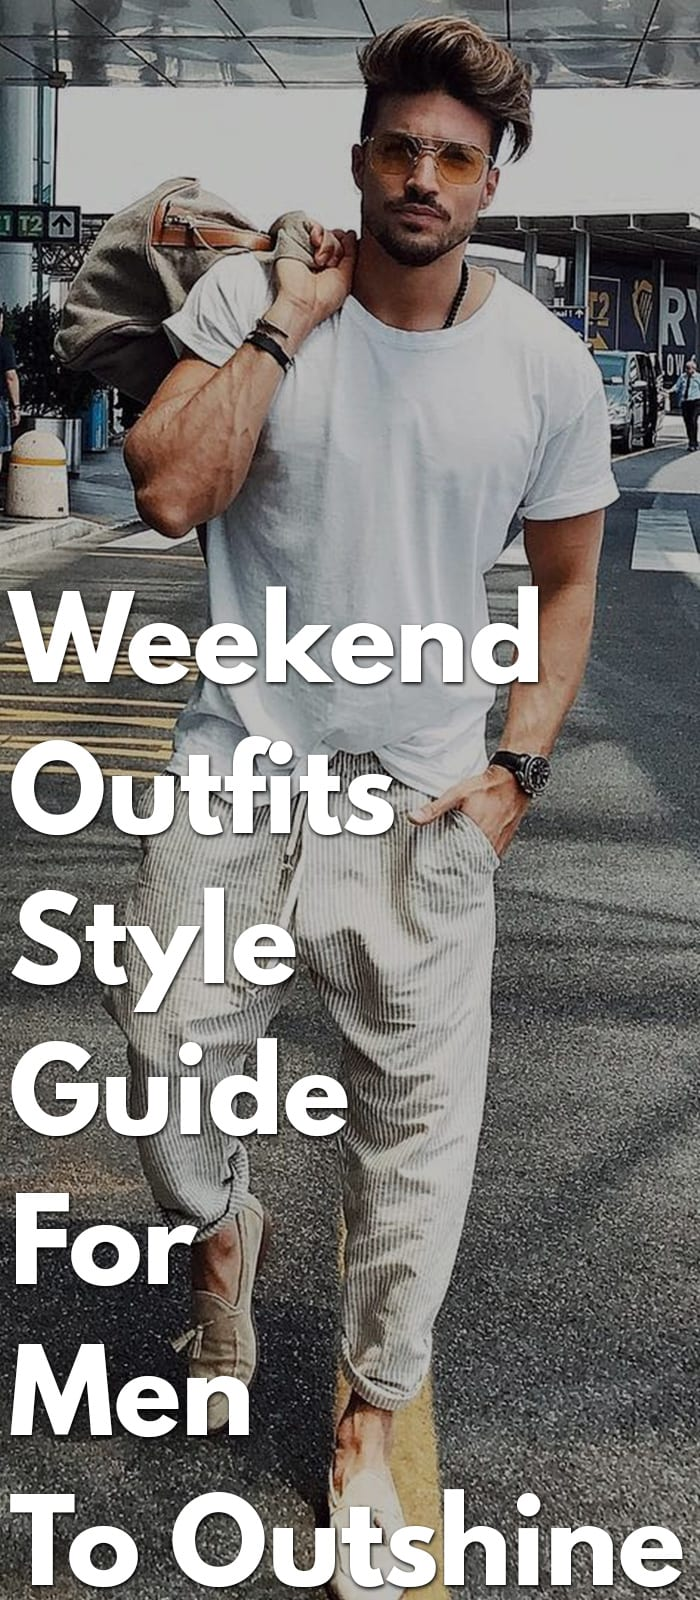 Weekend-Outfits-Style-Guide-For-Men-To-Outshine